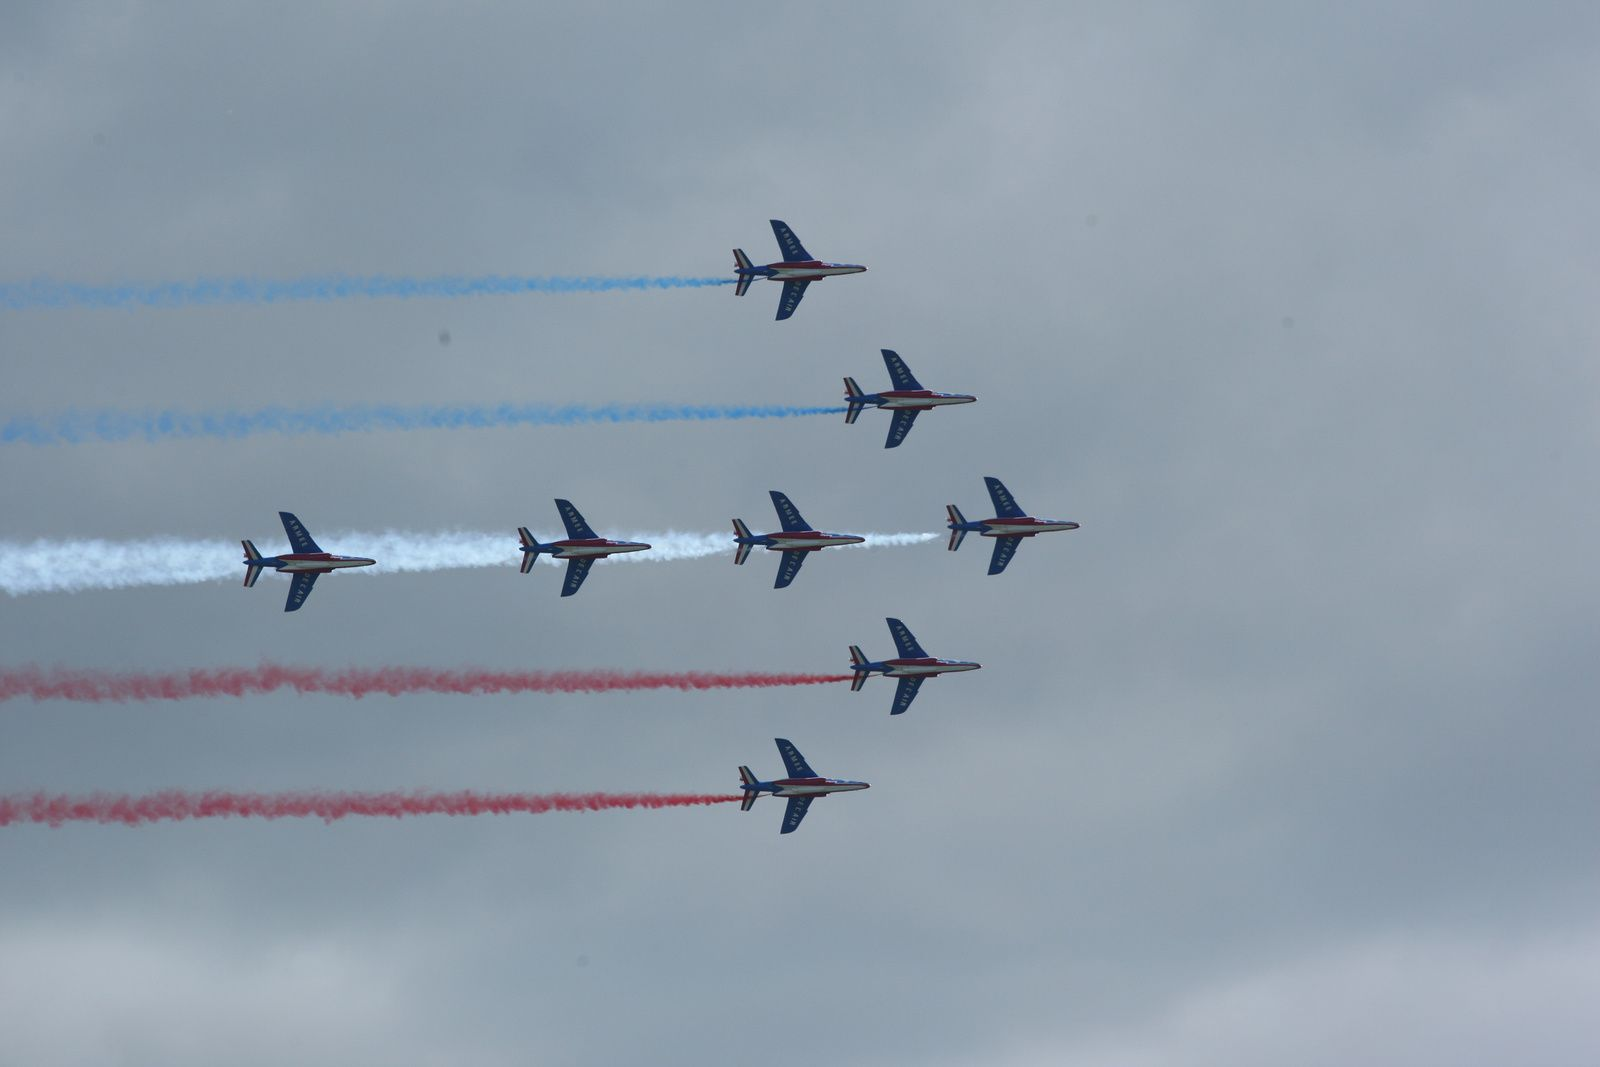 La patrouille de France (photo Loïc Legrand)